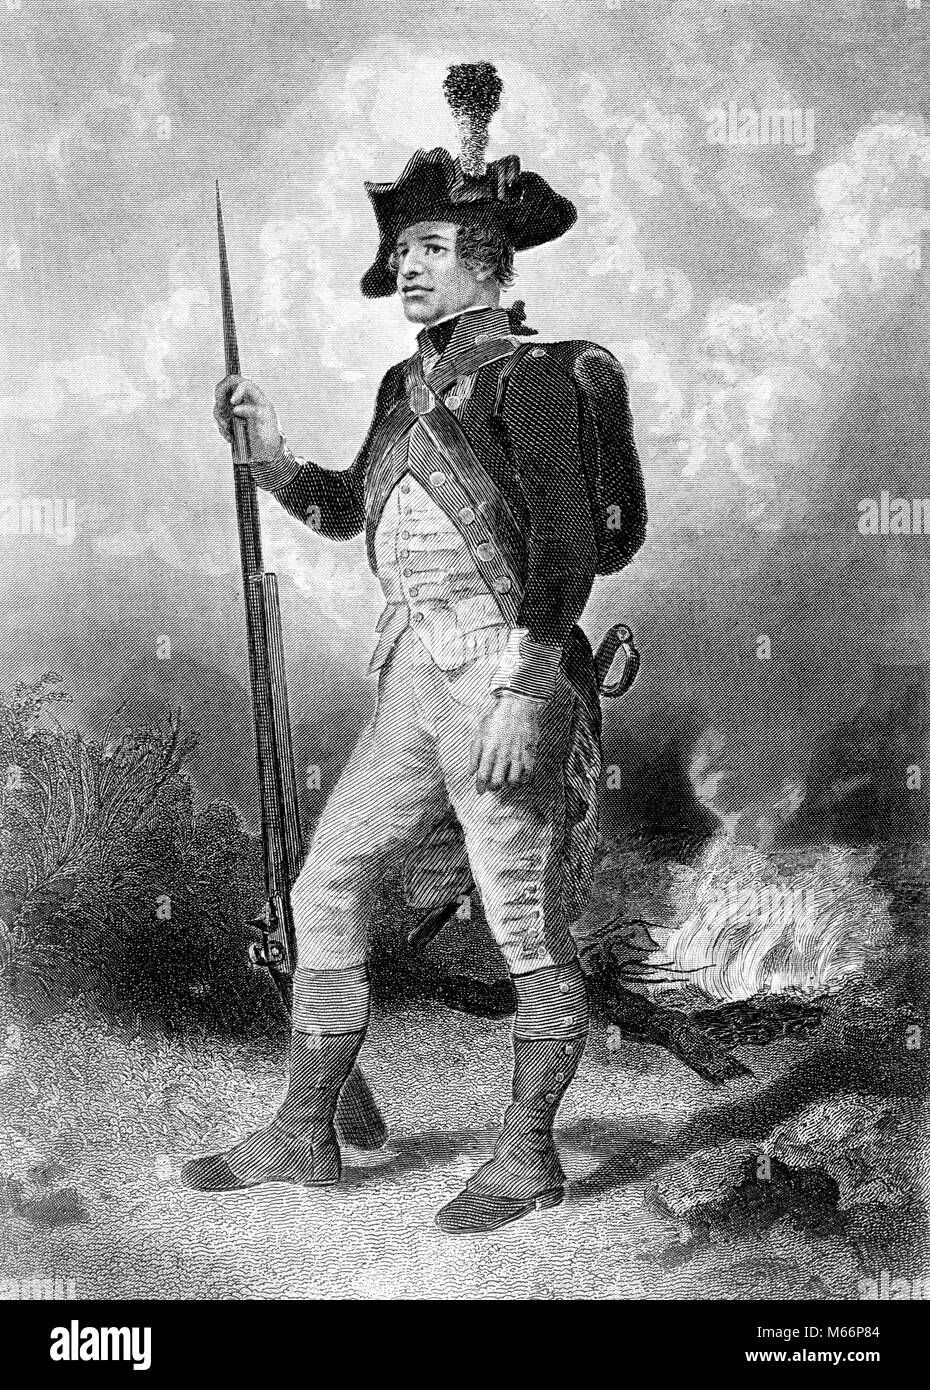 1770s ILLUSTRATION DEPICTING FULL LENGTH FIGURE OF SOLDIER FROM CONTINENTAL ARMY OF AMERICAN REVOLUTION - q59398 - Stock Image